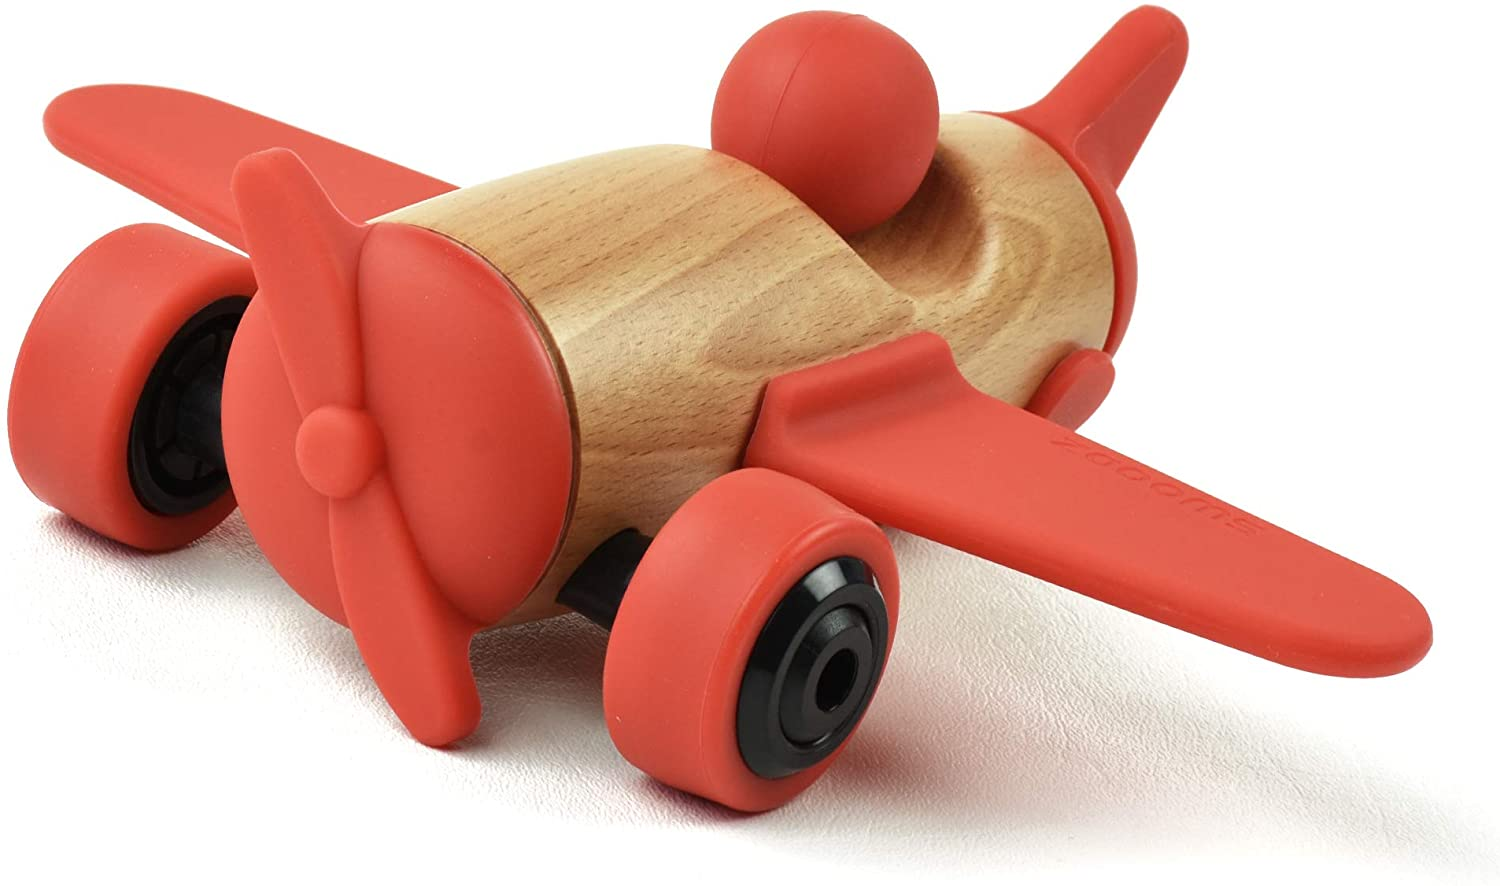 SWOODZ Wooden Toy Vehicles, Take Apart Plane, Assembly Wooden Toys, Wooden Plane, STEM Learning Gifts for 3 4 5 6 Year Olds, Kids, Toddlers, Boys, Girls, Children